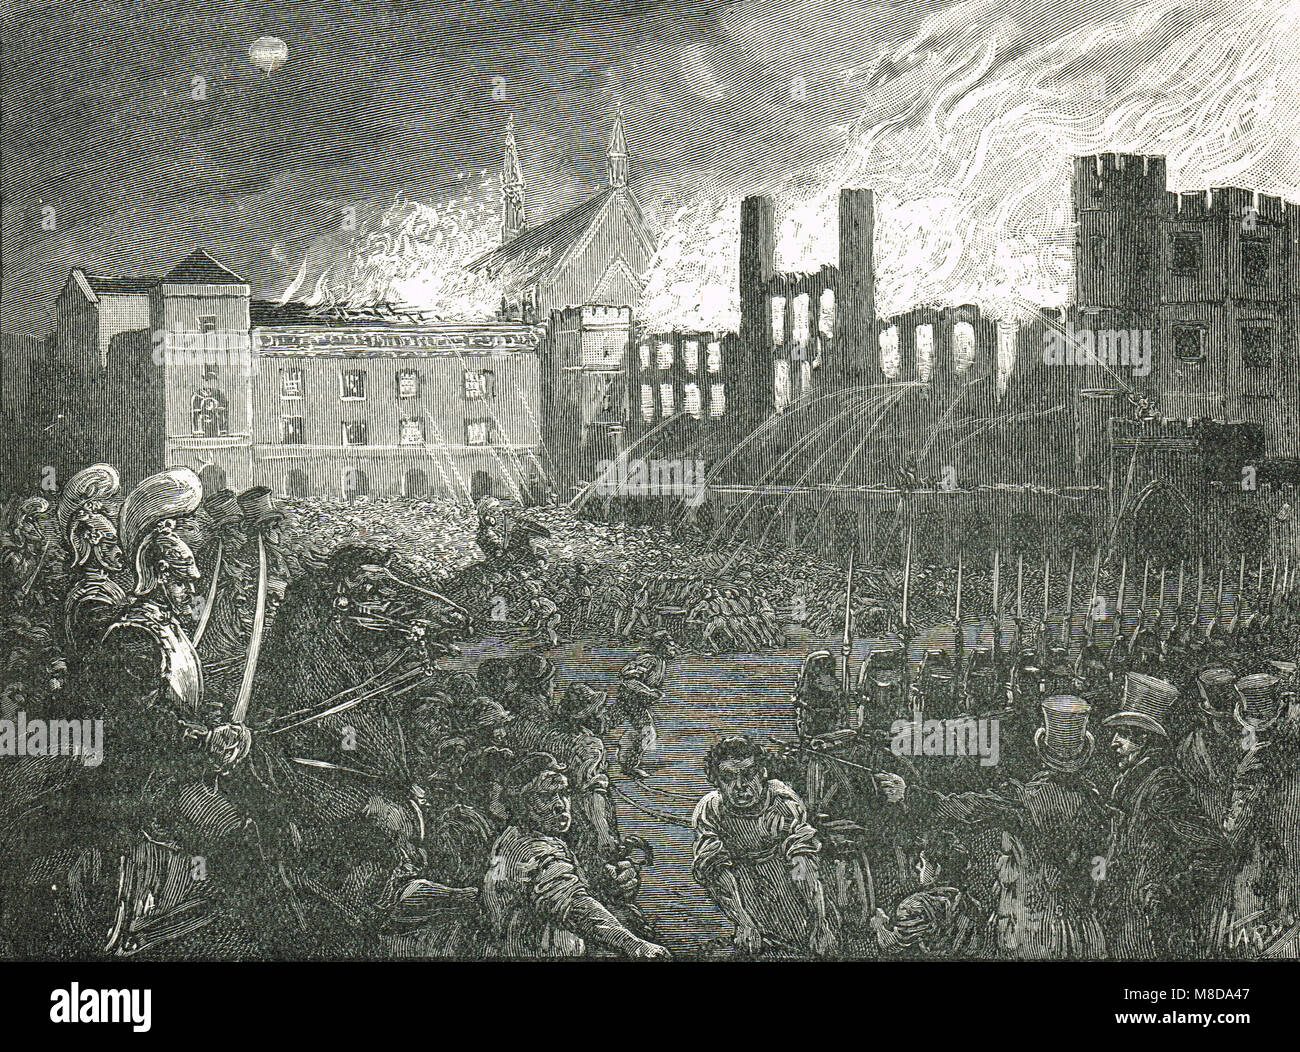 Palais de Westminster en feu, l'incendie du Parlement, le 16 octobre 1834 Photo Stock